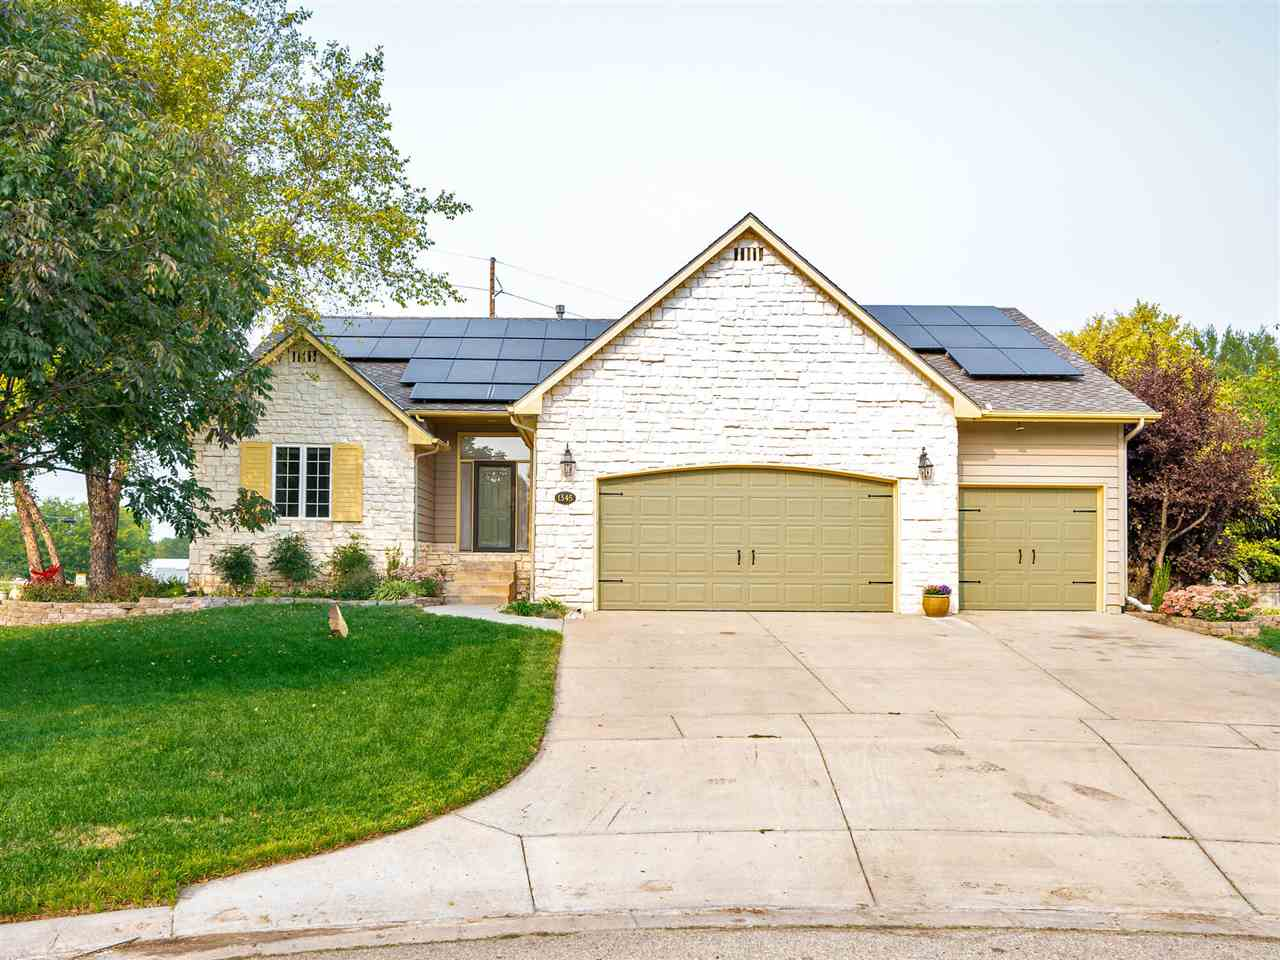 Gorgeous spacious 5 bedroom 3 full bath home located in a  cul-de-sac in the sought after Maize Scho